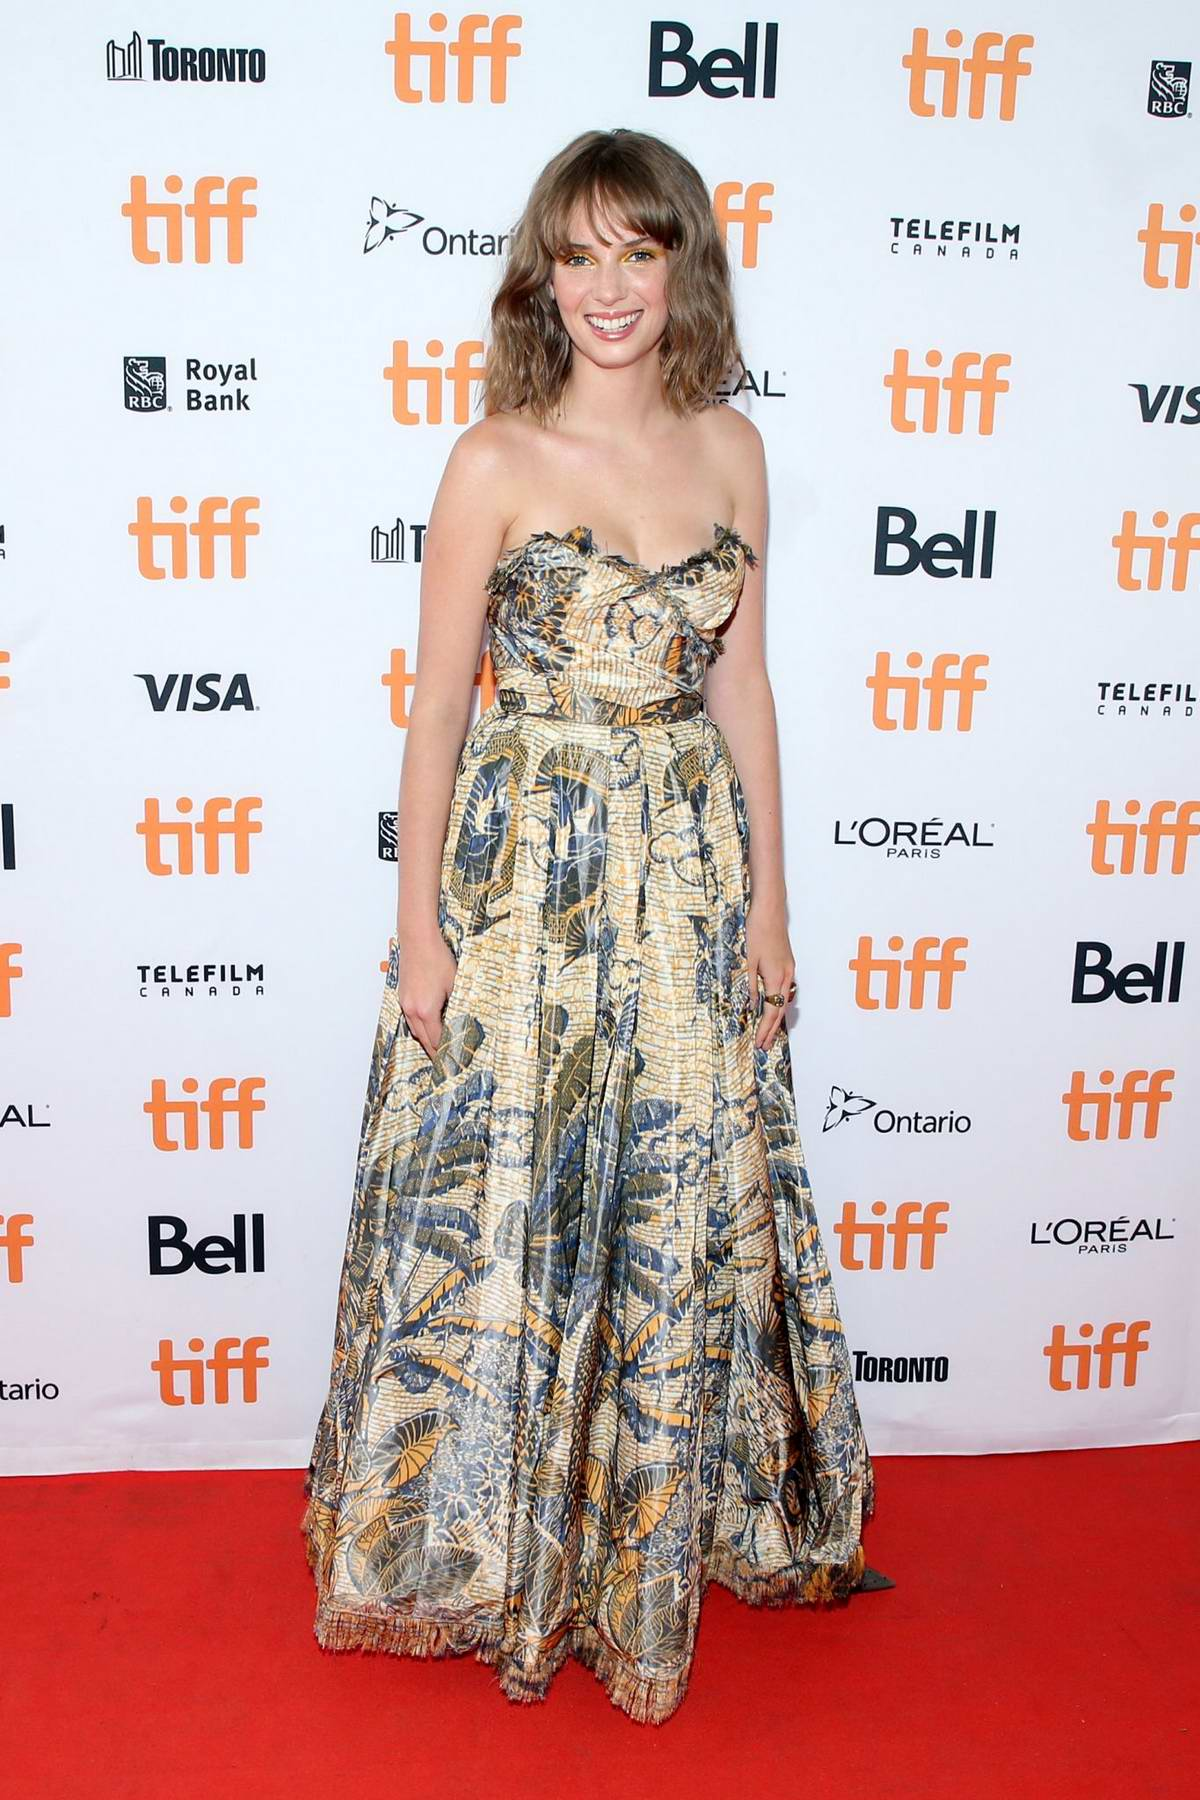 Maya Hawke attends the 'Human Capital' Premiere during the 2019 Toronto International Film Festival in Toronto, Canada